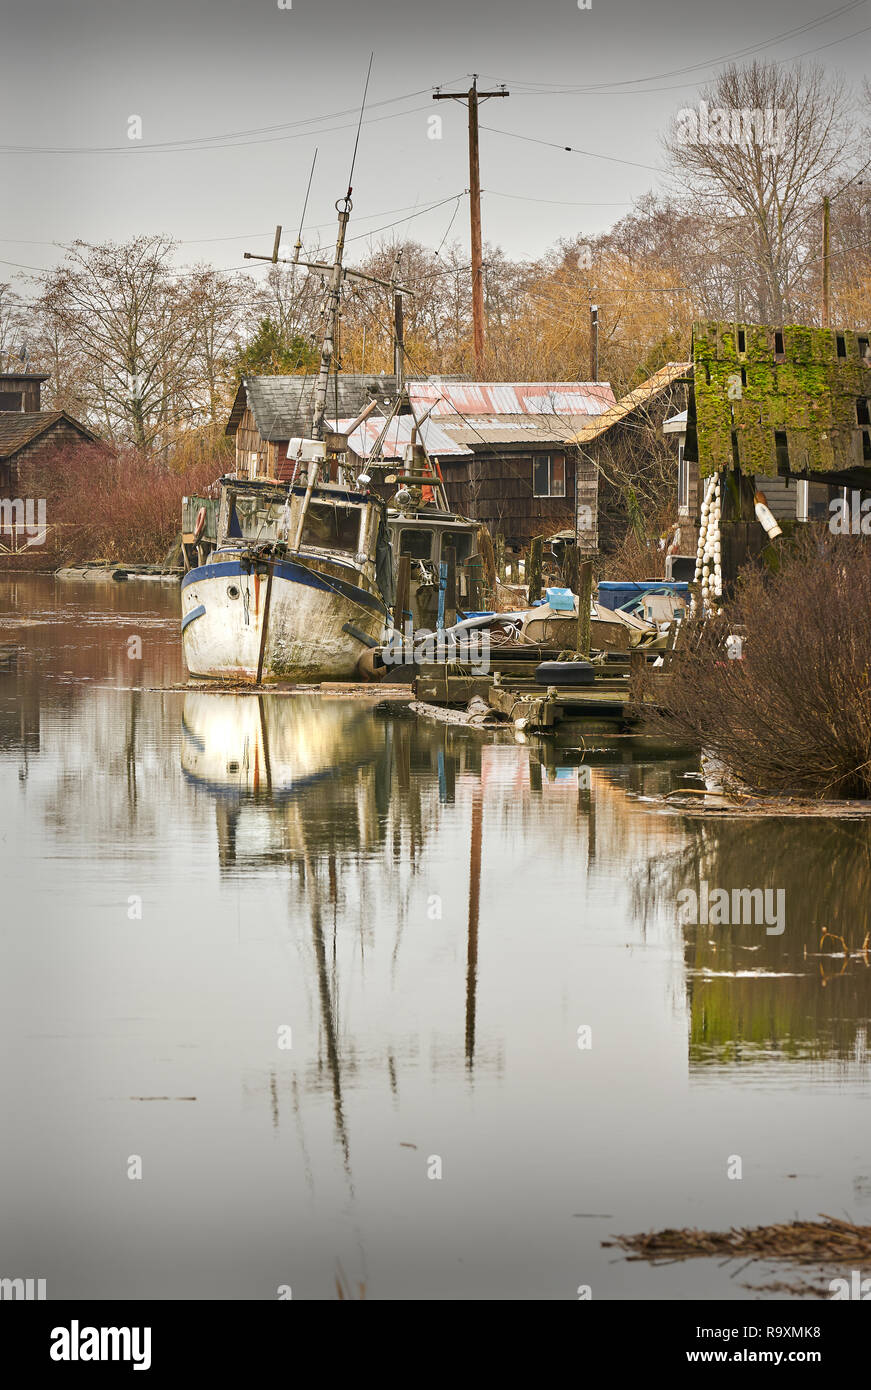 Finn Slough High Water, Richmond. The historic fishing settlement of Finn Slough on the banks of the Fraser River near Steveston in Richmond, British - Stock Image